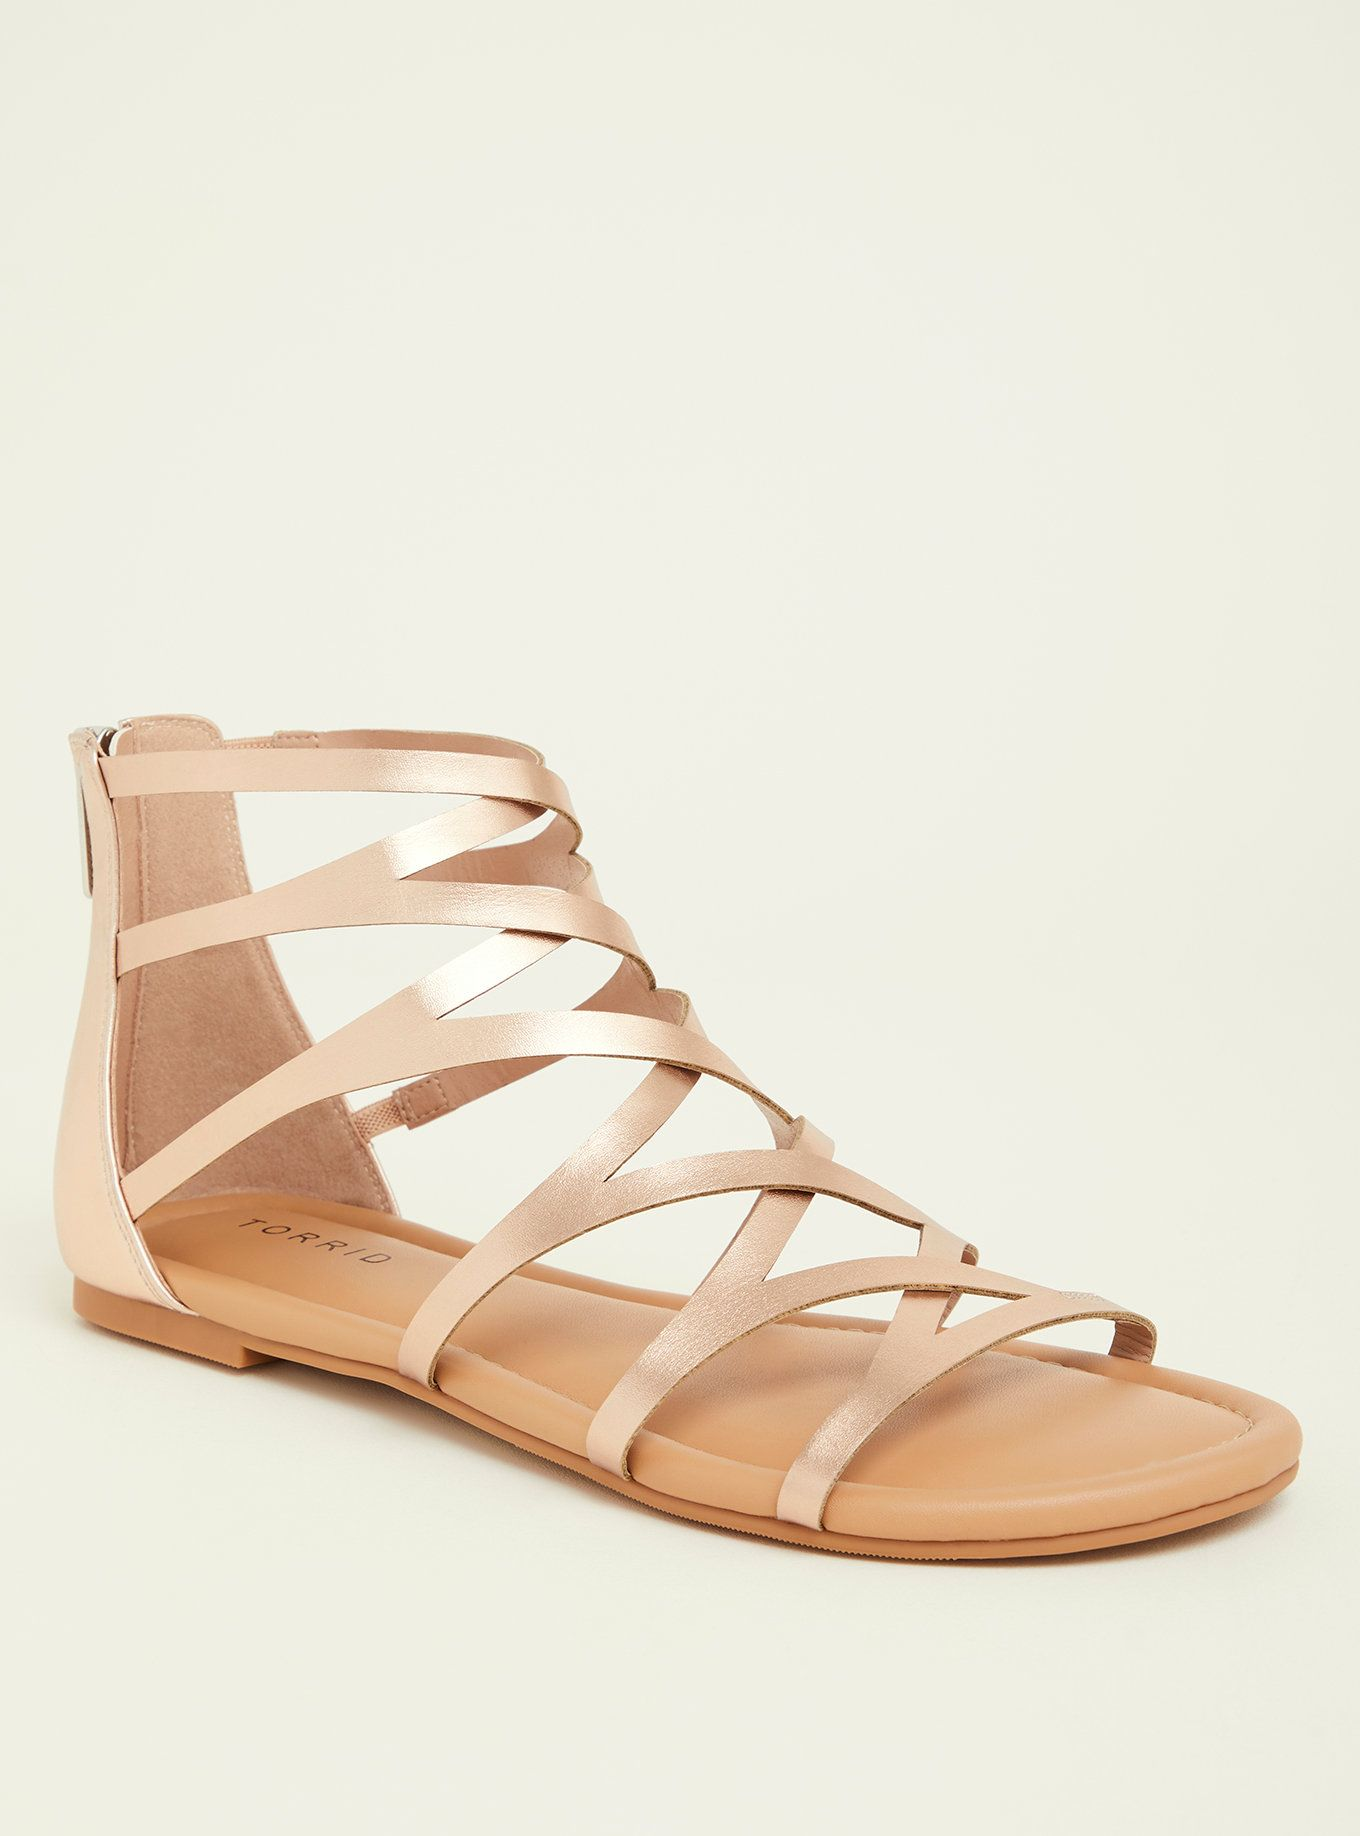 ad147ace3f665f Rose Gold Gladiator Sandal (Wide Width) in 2019